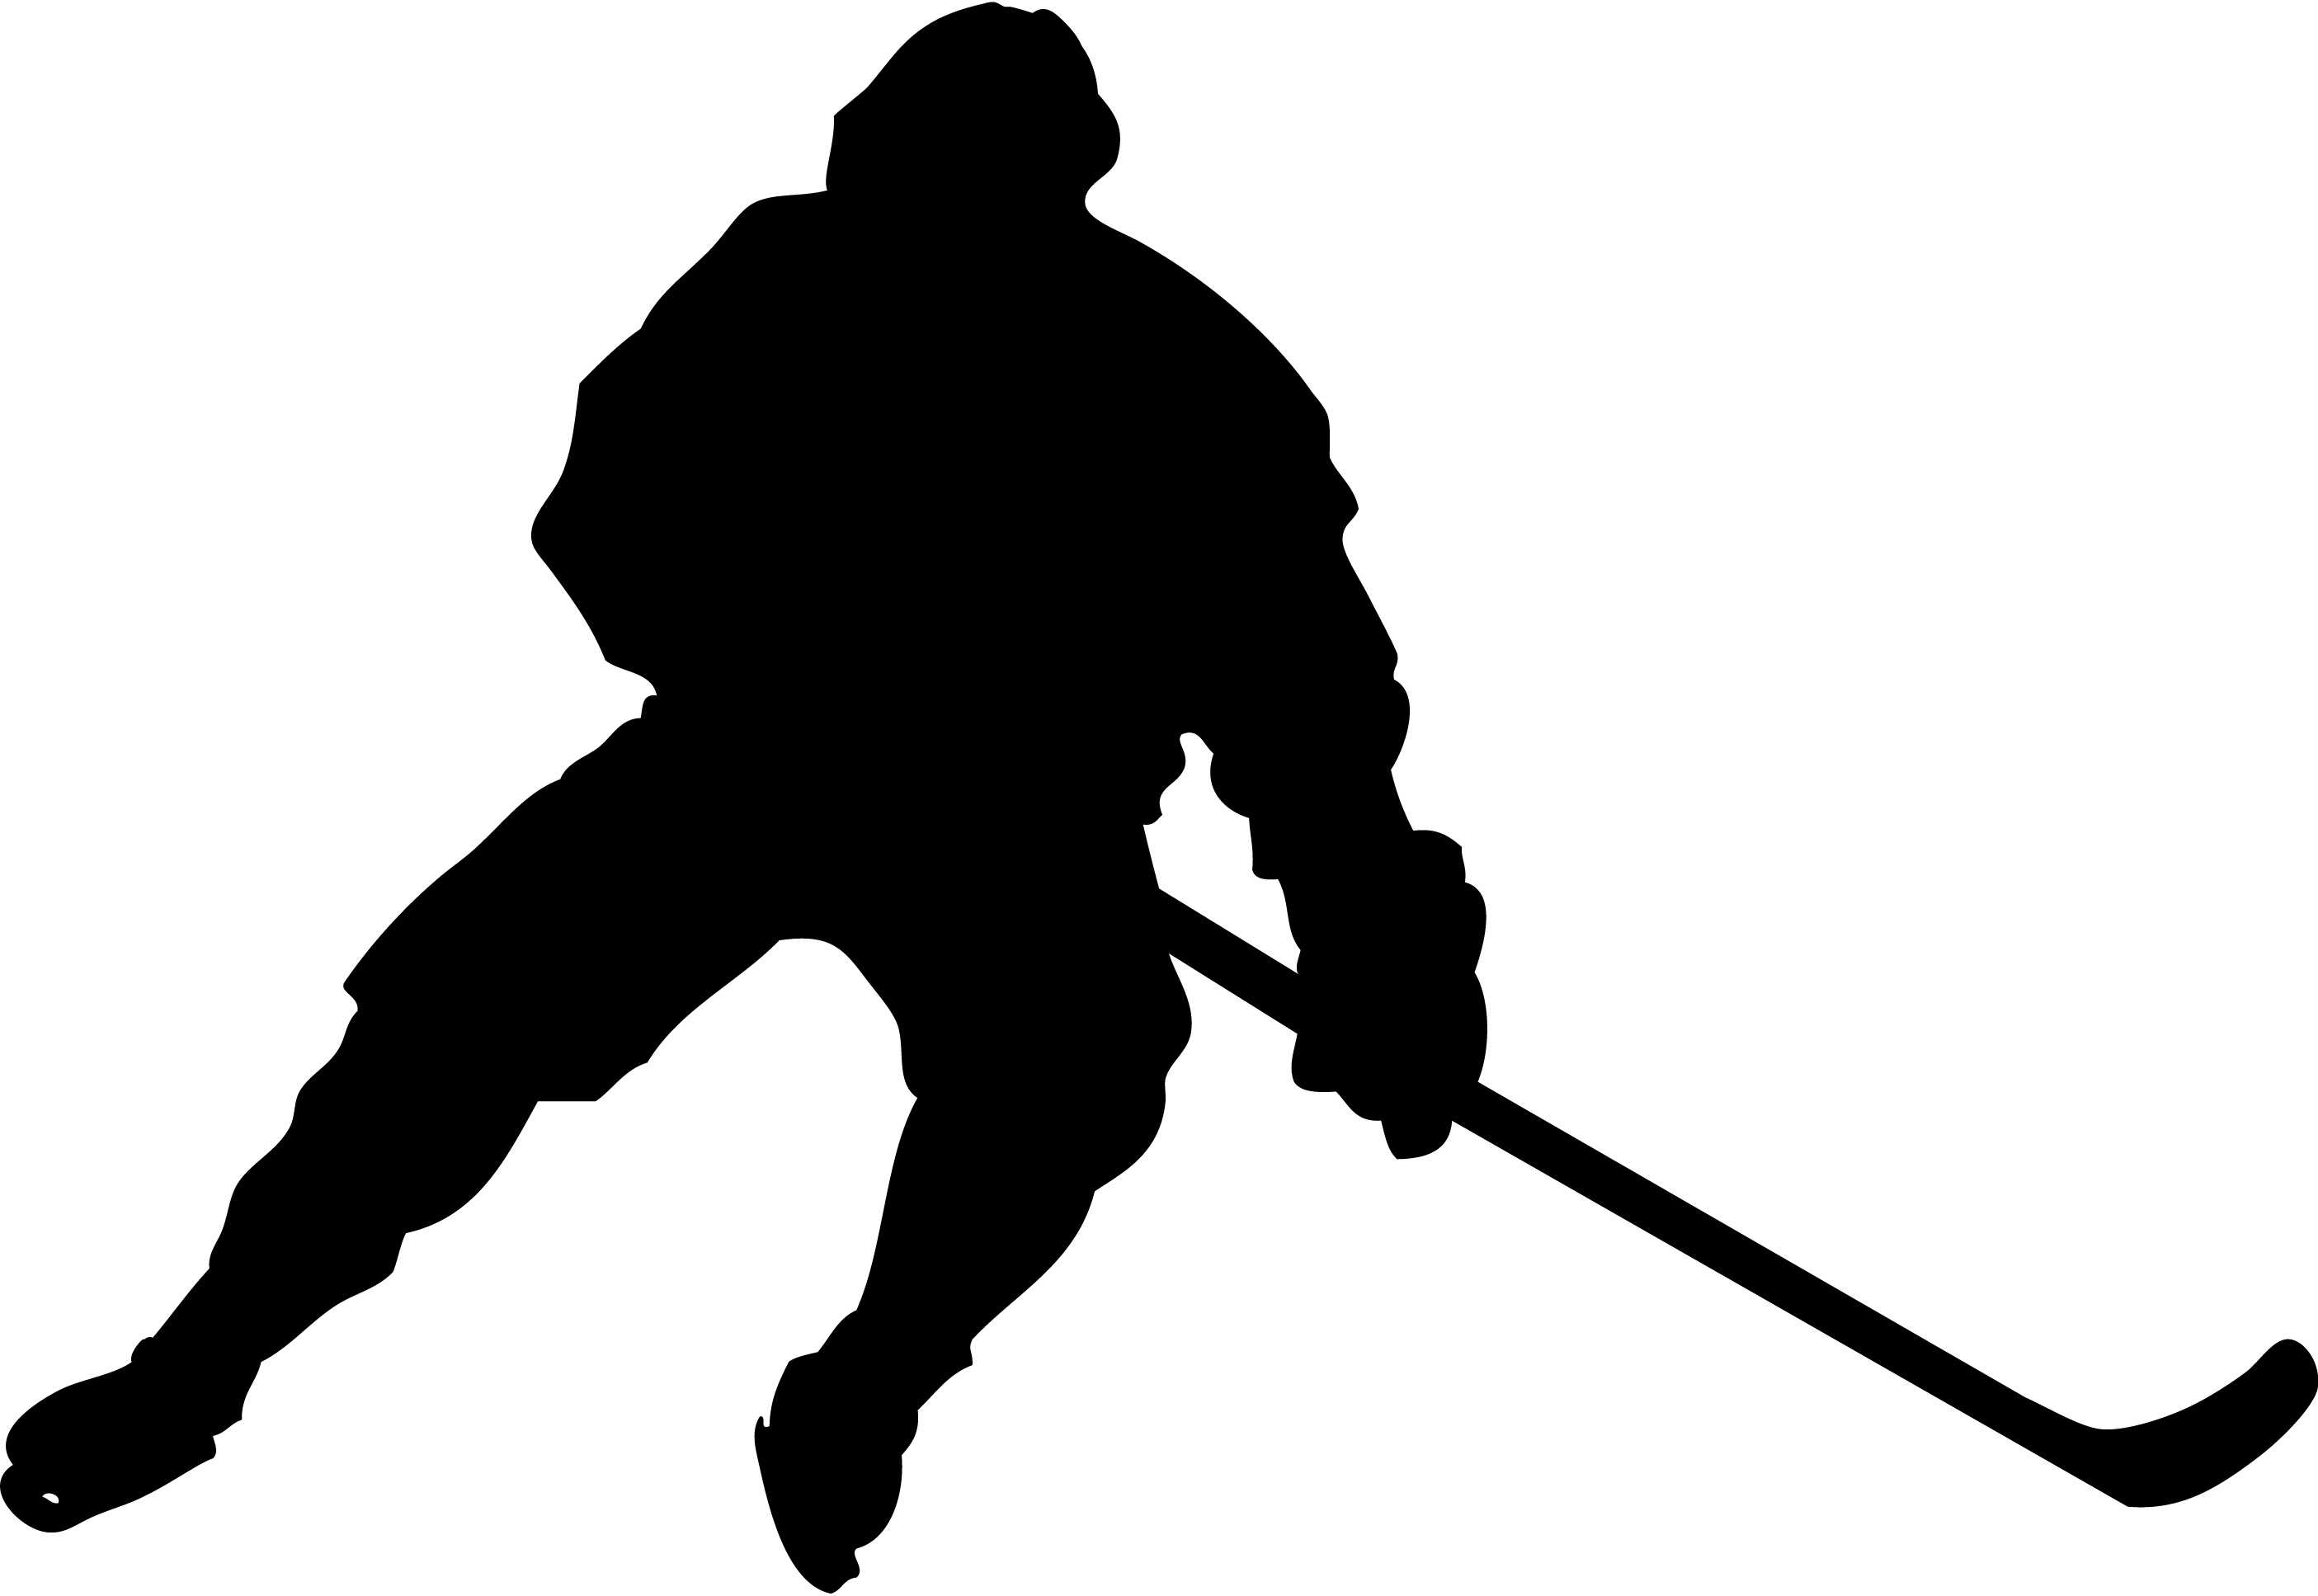 Hockey player silhouette clipart picture freeuse stock Free Hockey Player, Download Free Clip Art, Free Clip Art on ... picture freeuse stock